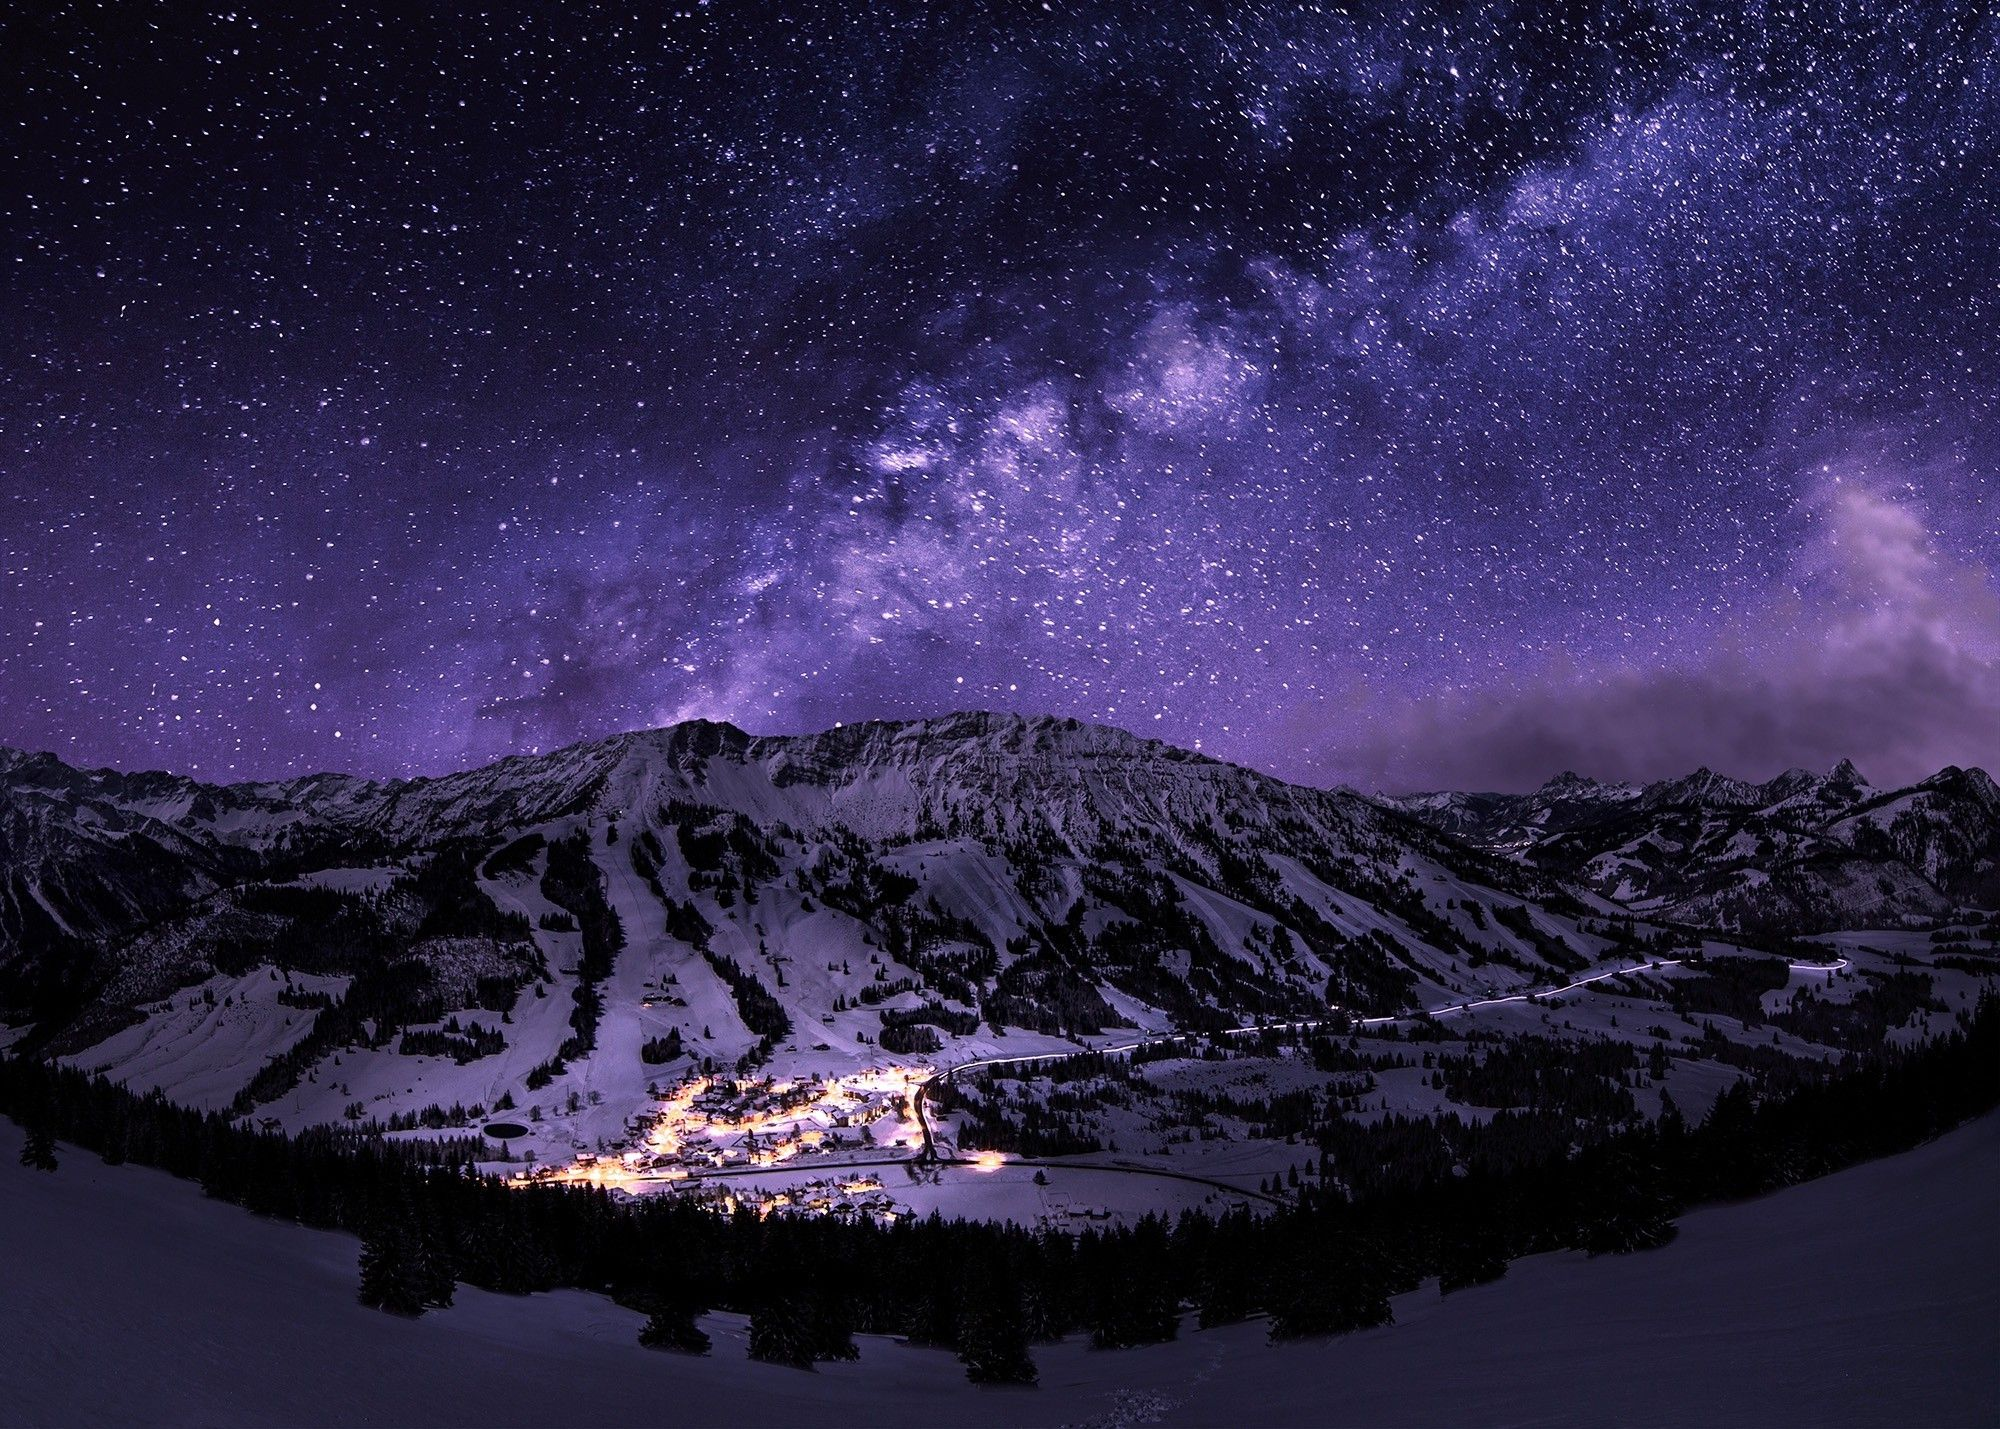 Starry Galaxy Wallpaper Images With Wallpaper High